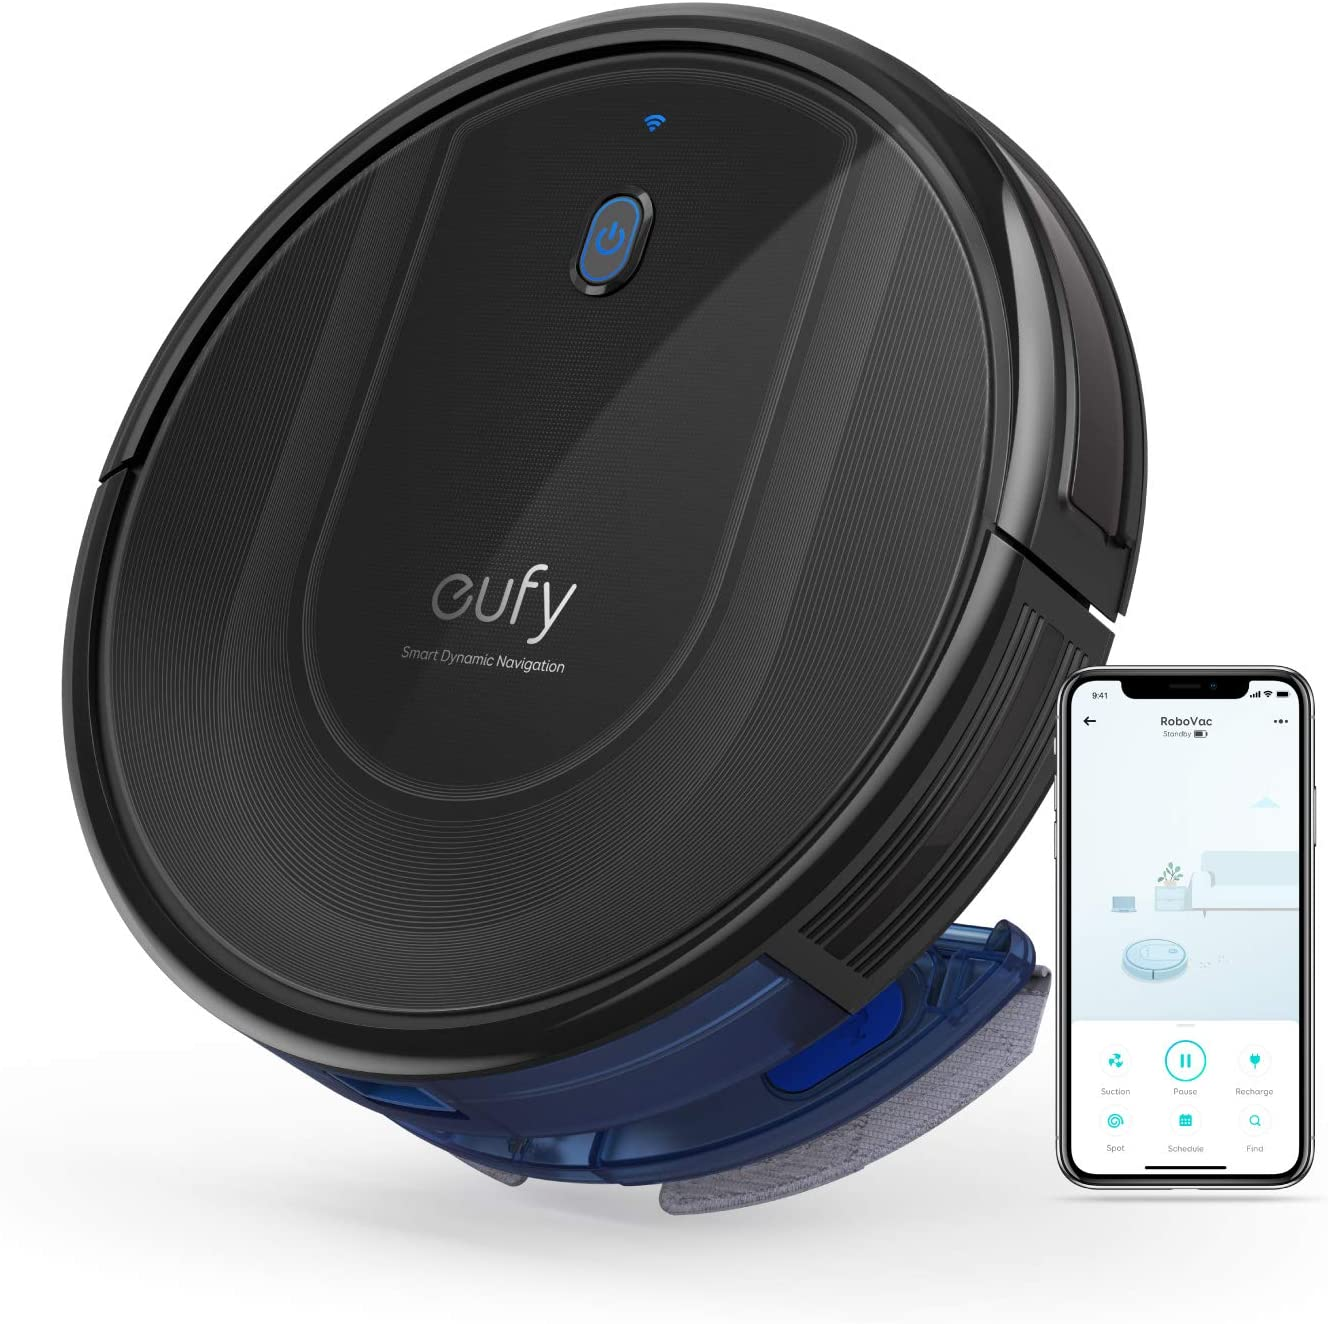 eufy by Anker, RoboVac G10 Hybrid, Robotic Vacuum Cleaner, Smart Dynamic Navigation, 2-in-1 Sweep and mop, Wi-Fi, Super-Slim, 2000Pa Strong Suction, Quiet, Self-Charging, for Hard Floors Only